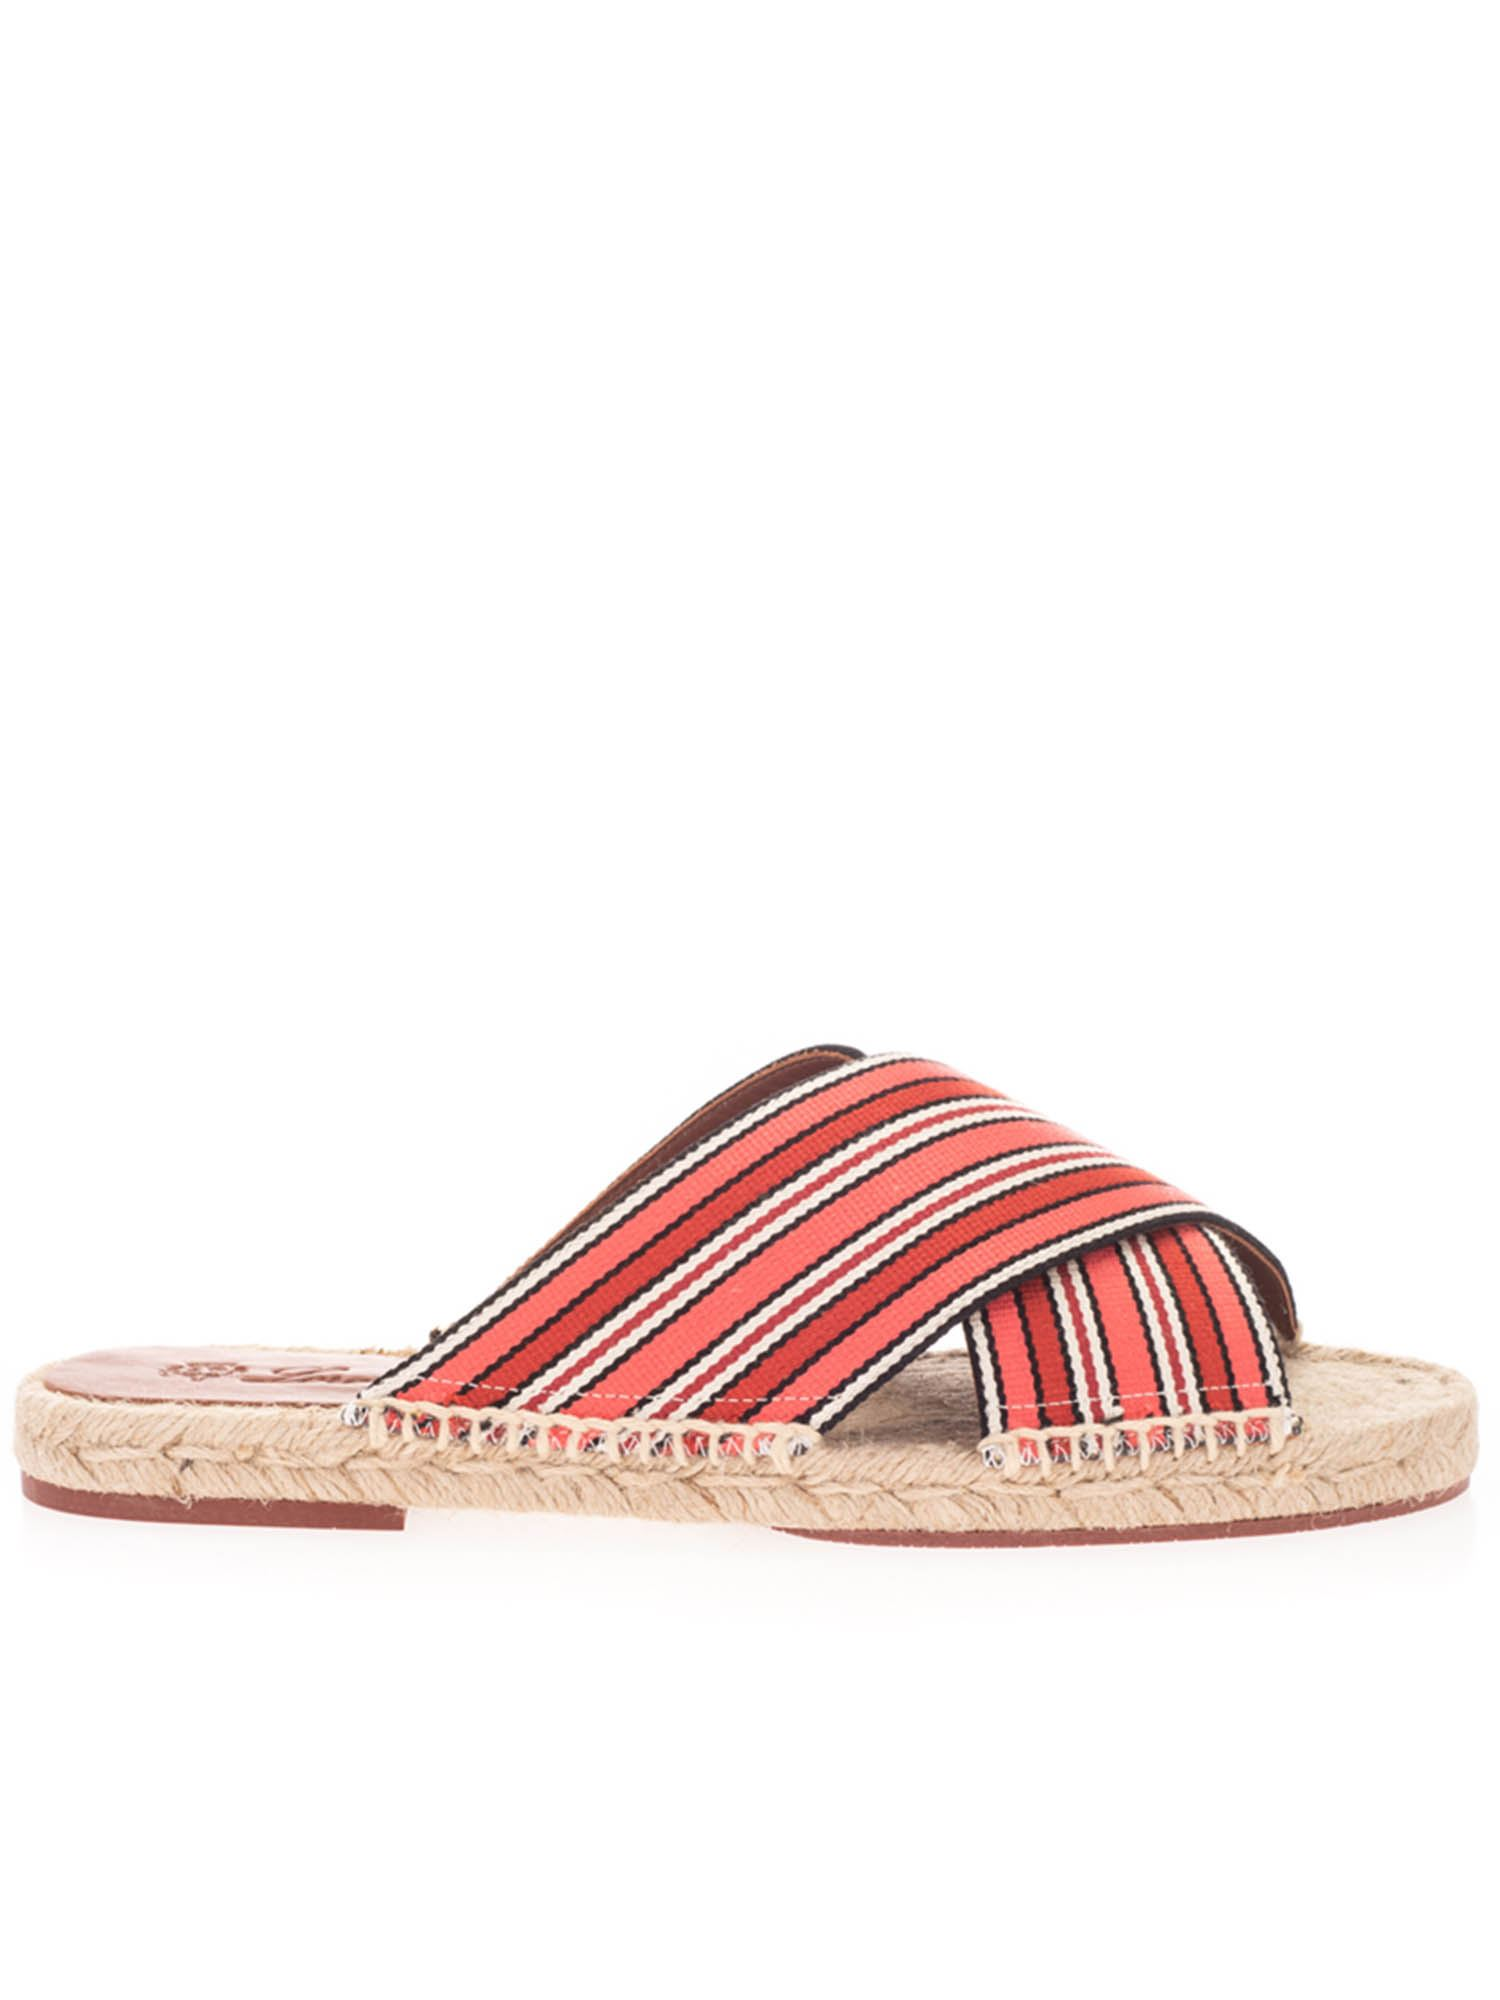 Loro Piana SUITCASE STRIPES CROSS SANDALS IN CORAL BAY